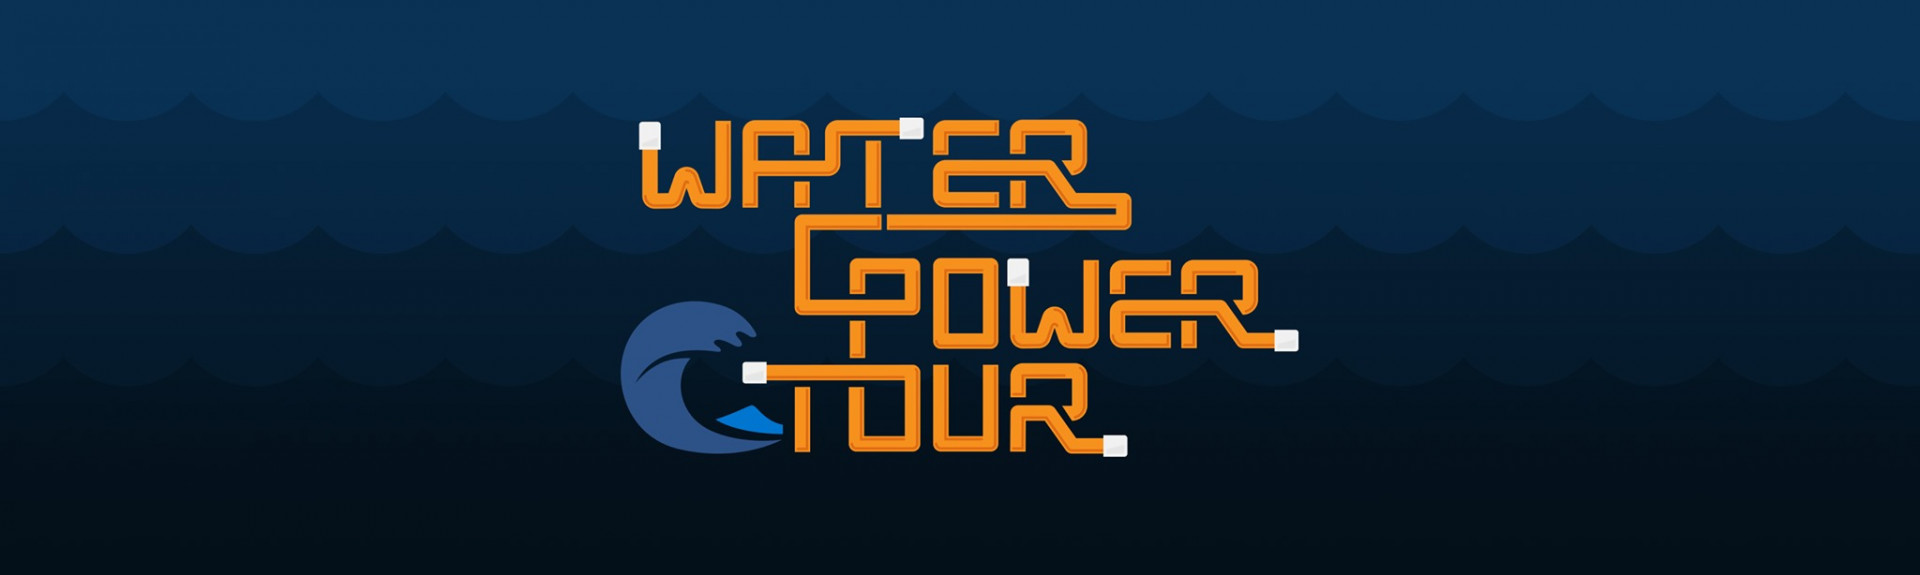 PNNL Water Power Tour